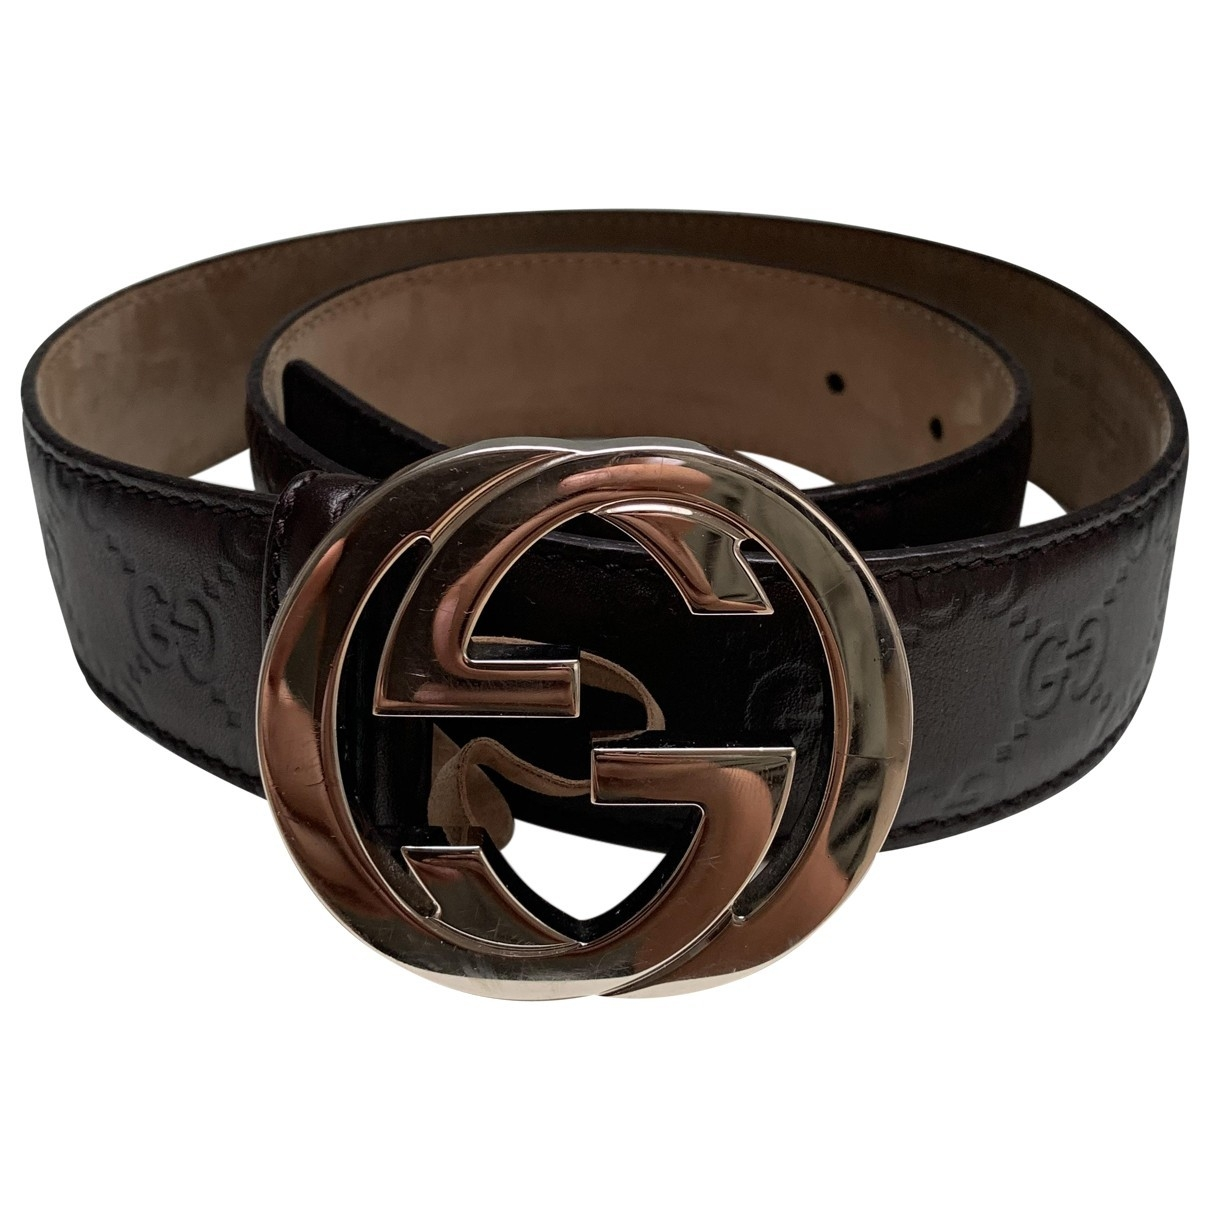 Gucci Interlocking Buckle Leather belt for Women 80 cm